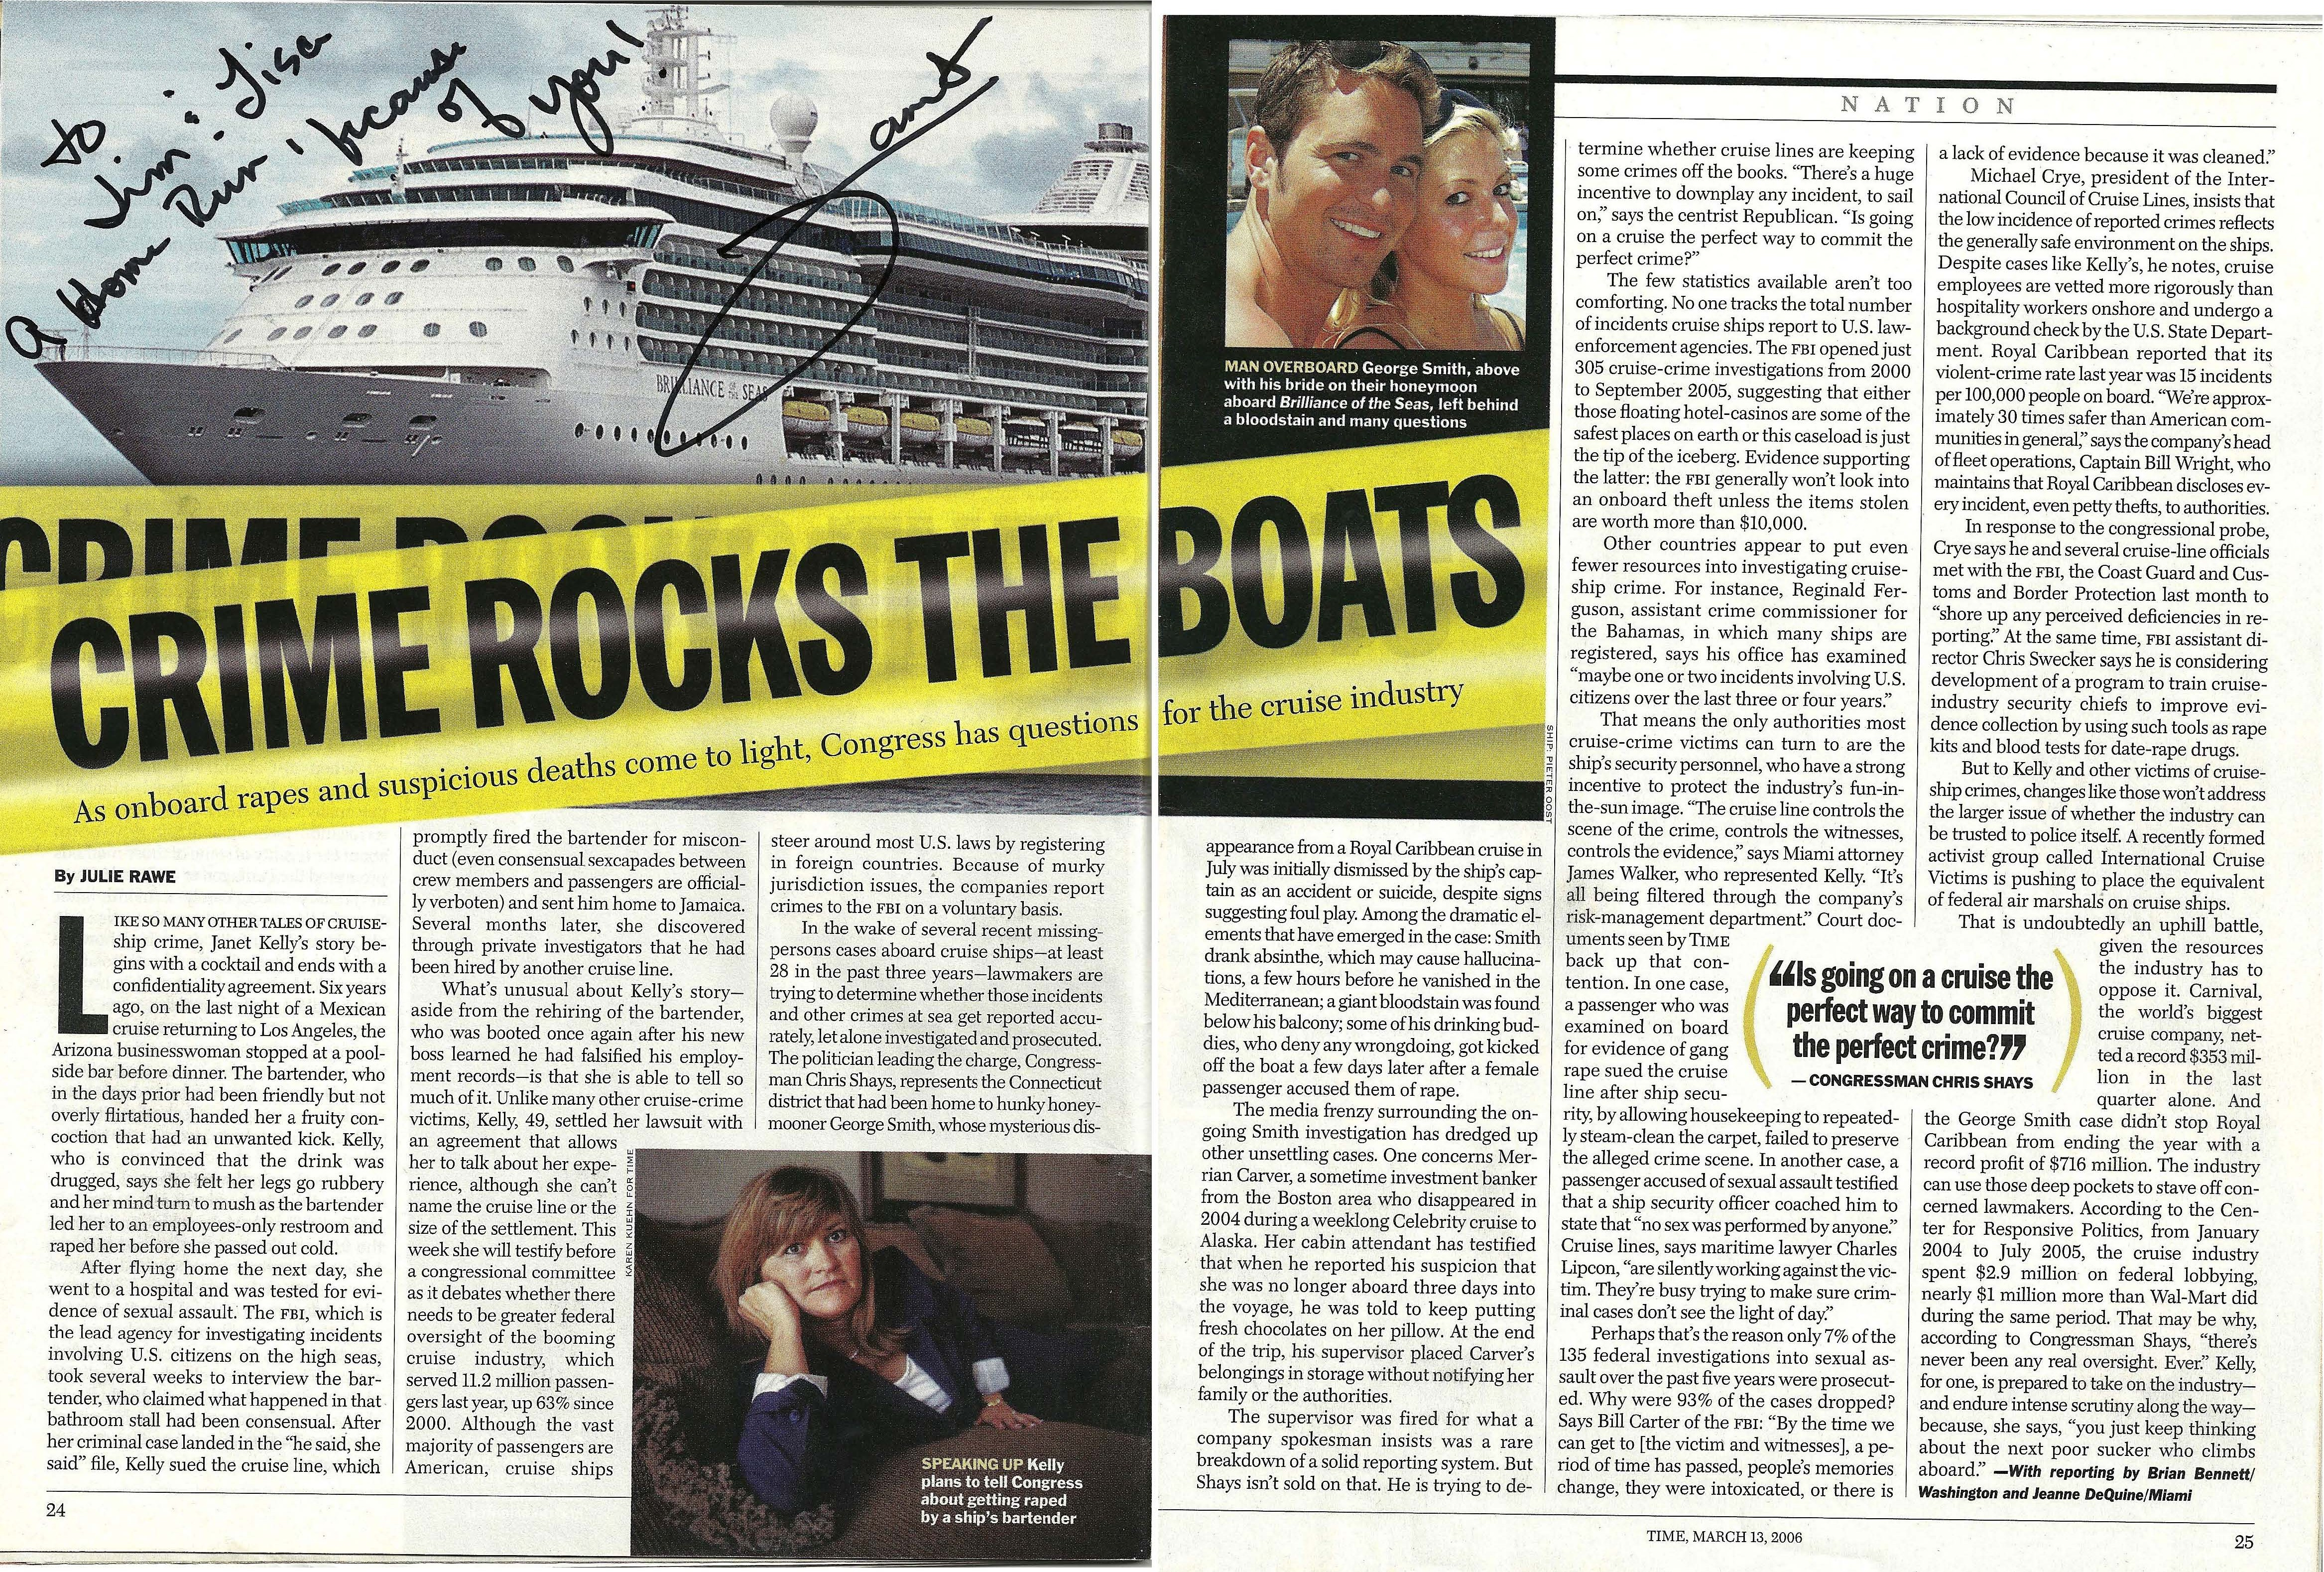 Cime Rocks The Boats - Cruise Ship Crime